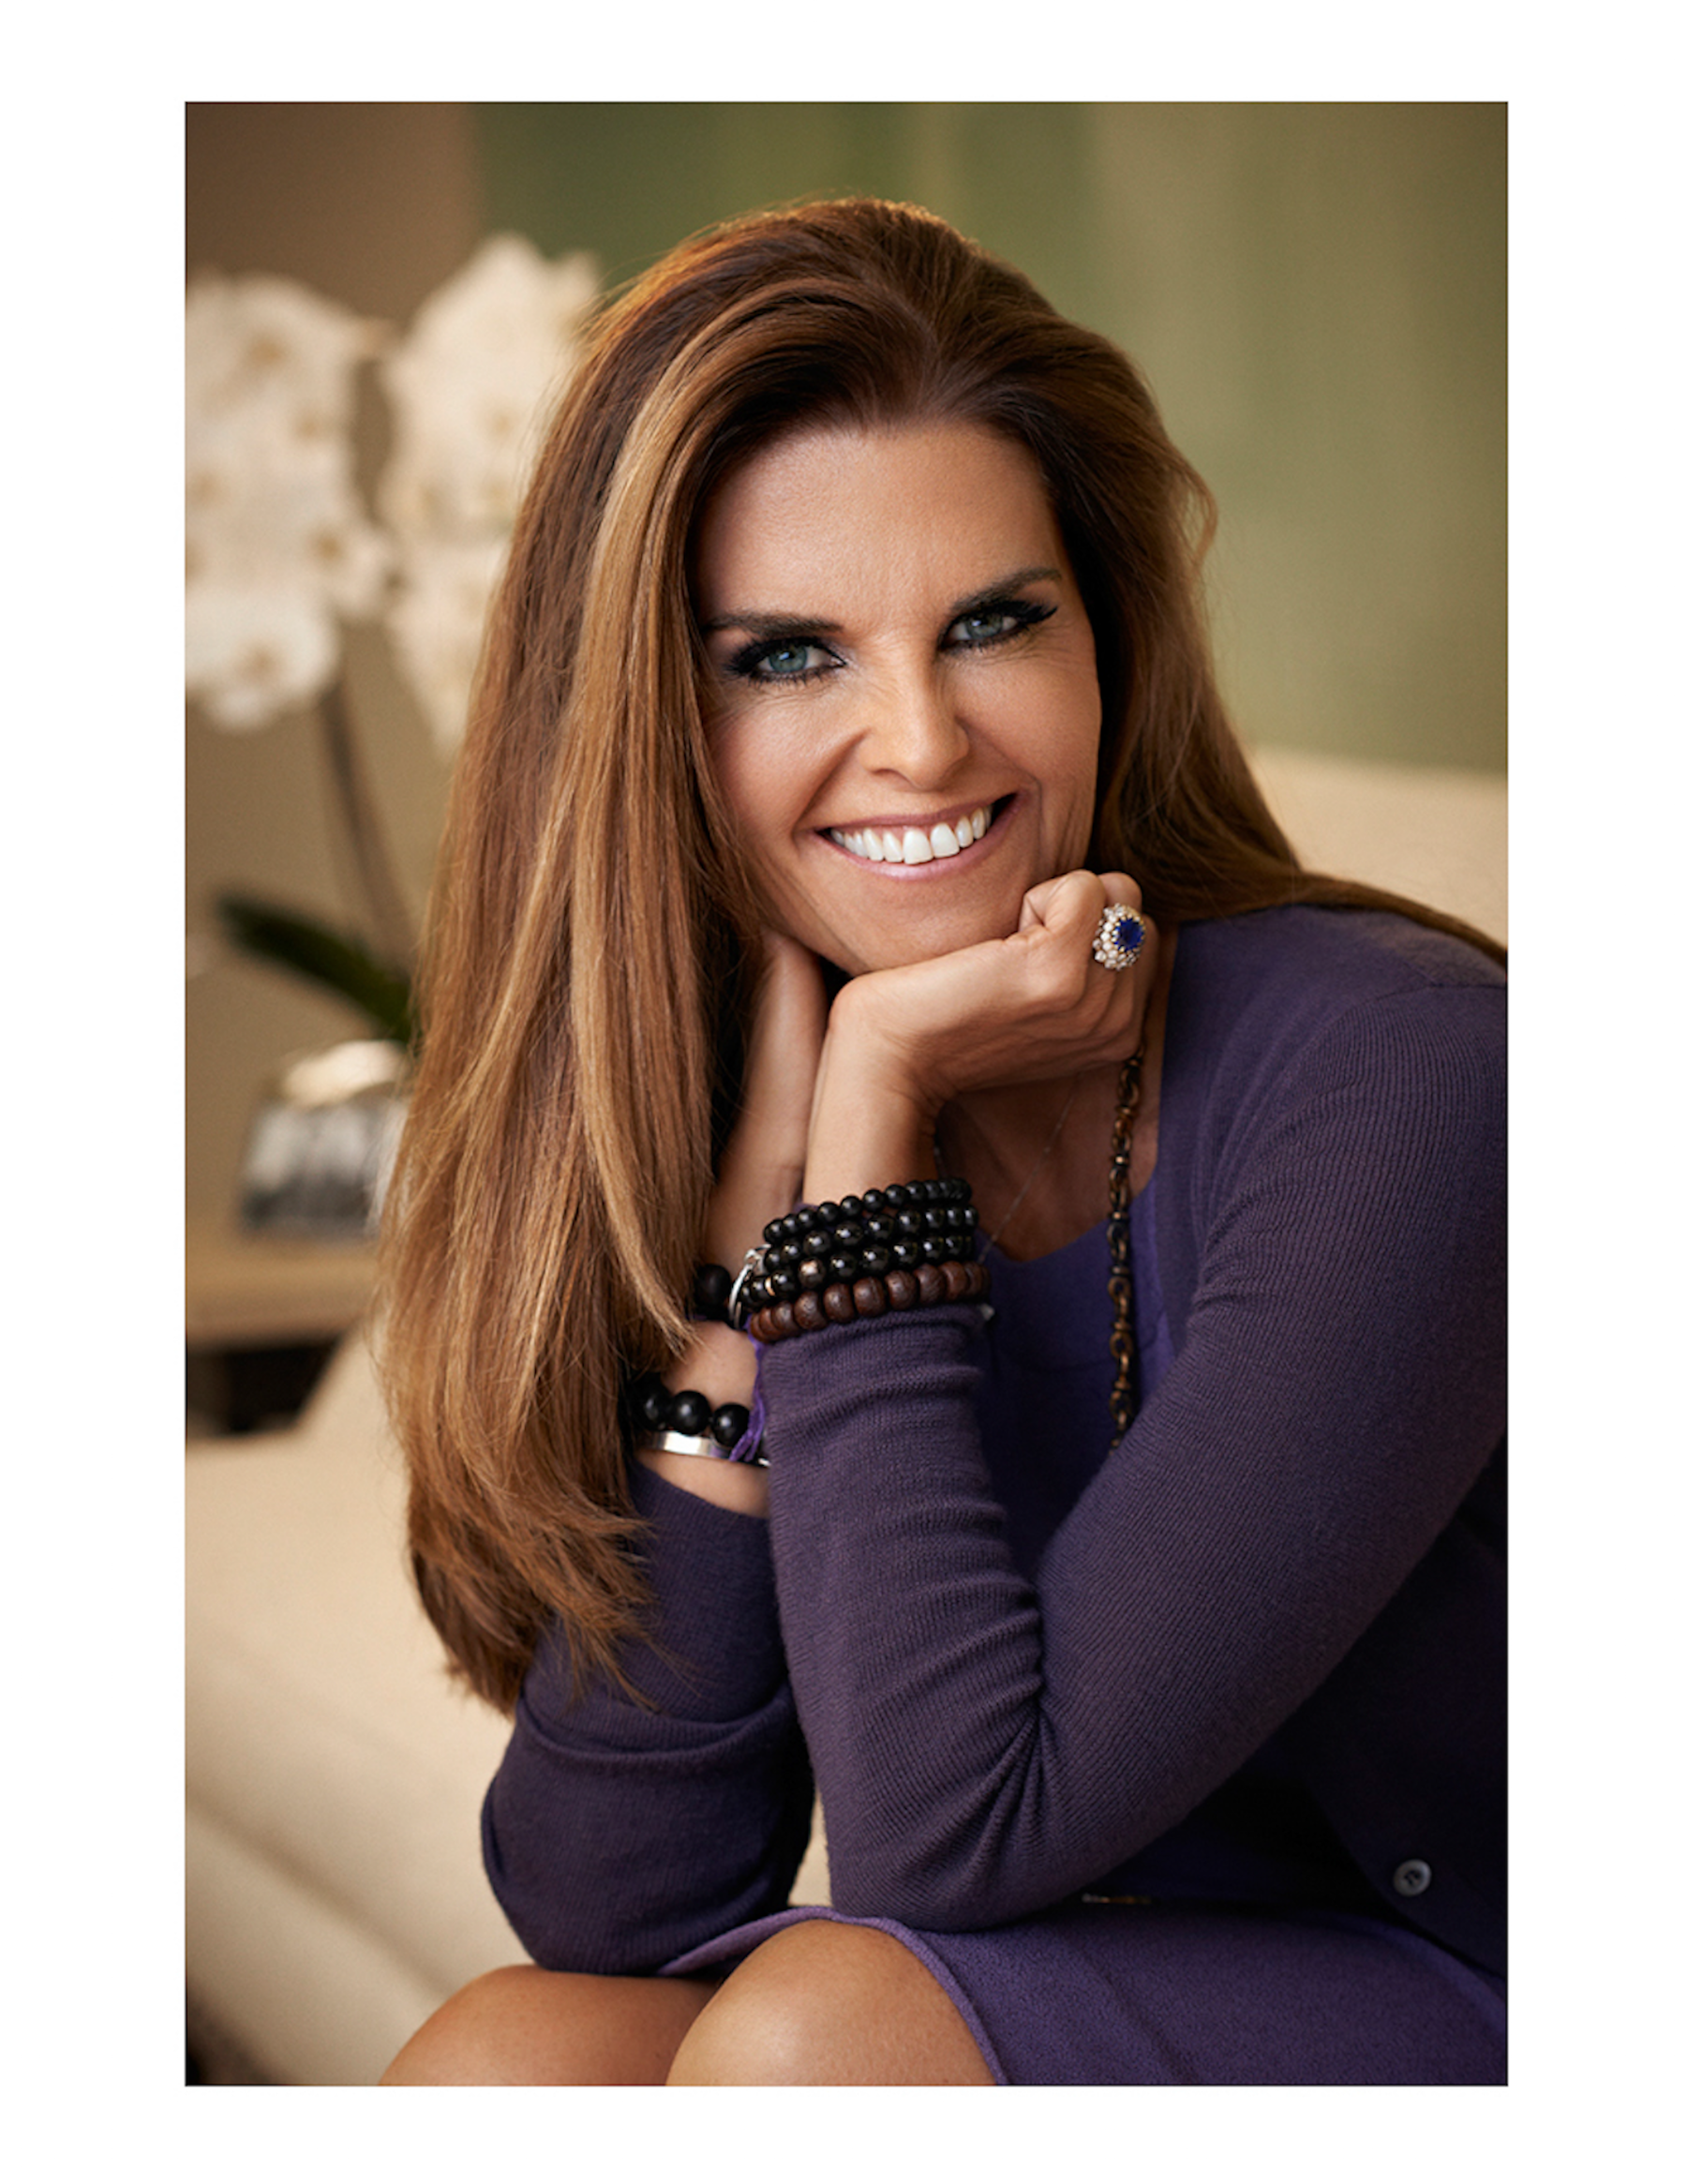 Maria Shriver, NBC News Special Anchor and founder of the Women's Alzheimer's Movement